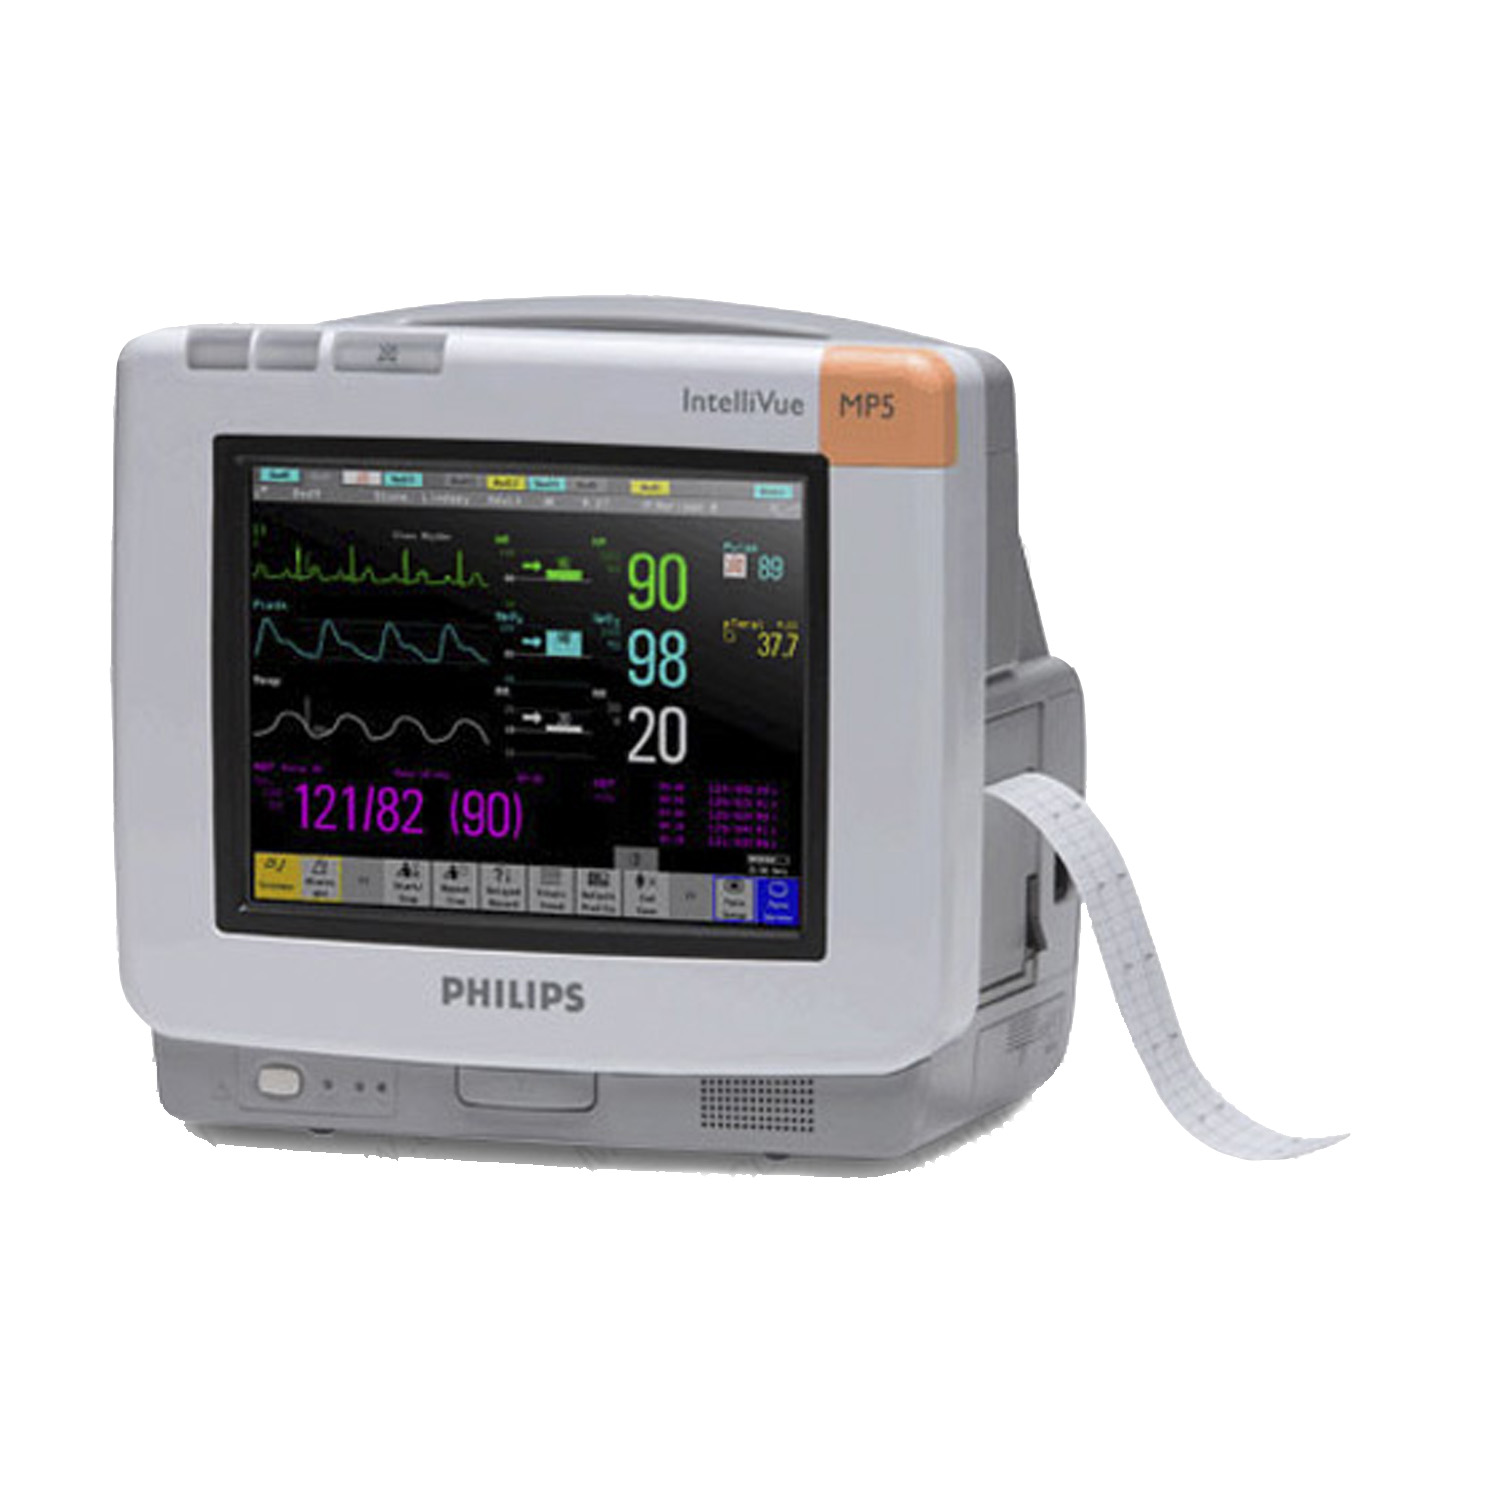 philips intellivue mp5 patient monitor rh avantehs com philips mp5 service manual pdf Philips DVD Player Manual